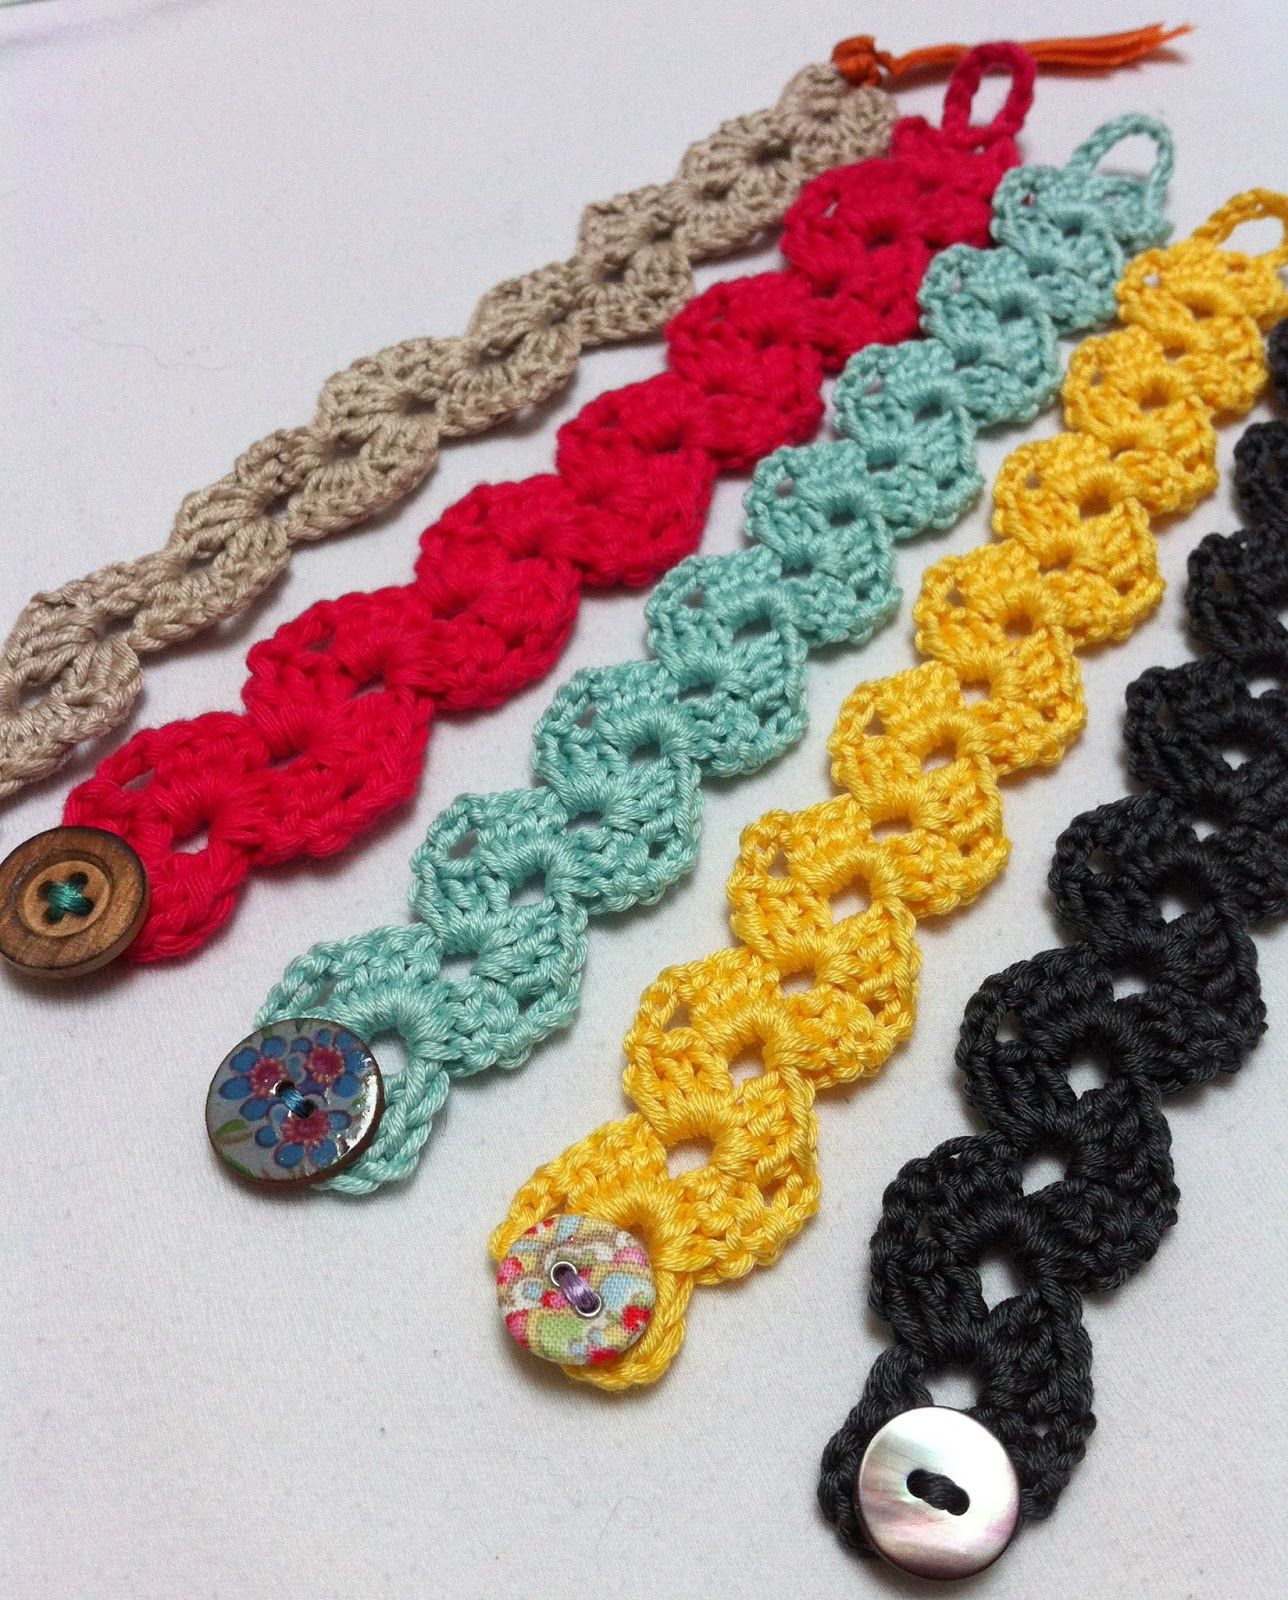 the blooming times :: crochet cuff tutorial and pattern - Oh my cuff ...